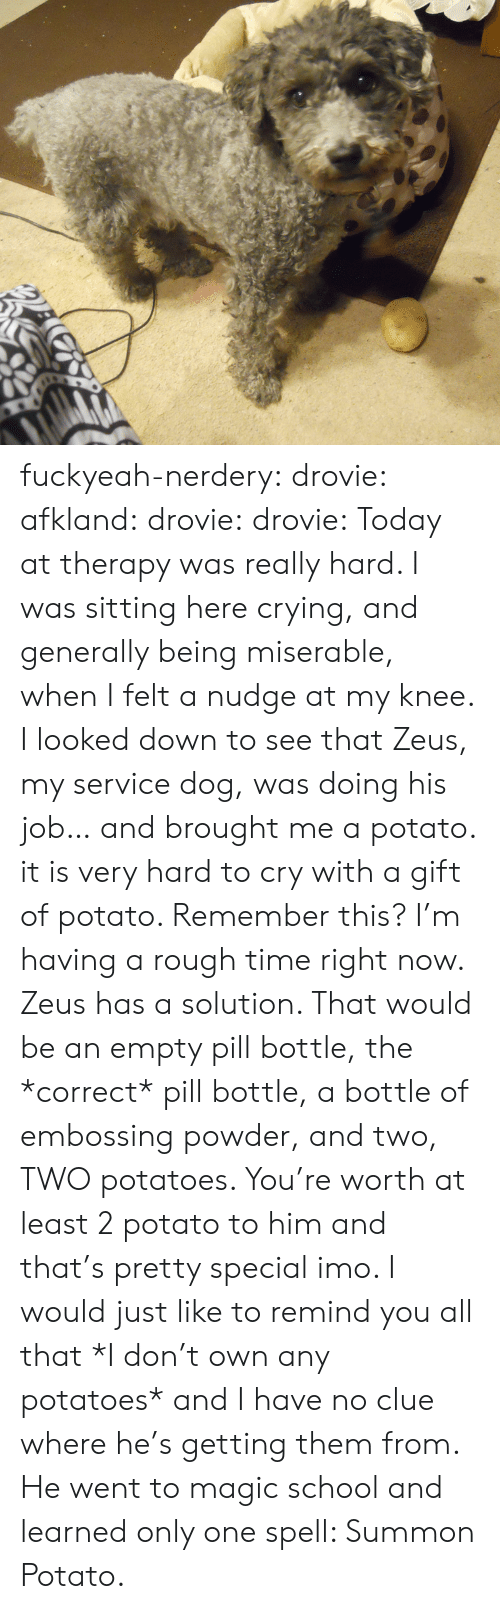 Crying, School, and Tumblr: fuckyeah-nerdery:  drovie:  afkland:  drovie:  drovie:  Today at therapy was really hard. I was sitting here crying, and generally being miserable, when I felt a nudge at my knee. I looked down to see that Zeus, my service dog, was doing his job… and brought me a potato. it is very hard to cry with a gift of potato.   Remember this? I'm having a rough time right now. Zeus has a solution.  That would be an empty pill bottle, the *correct* pill bottle, a bottle of embossing powder, and two, TWO potatoes.   You're worth at least 2 potato to him and that's pretty special imo.   I would just like to remind you all that *I don't own any potatoes* and I have no clue where he's getting them from.   He went to magic school and learned only one spell: Summon Potato.